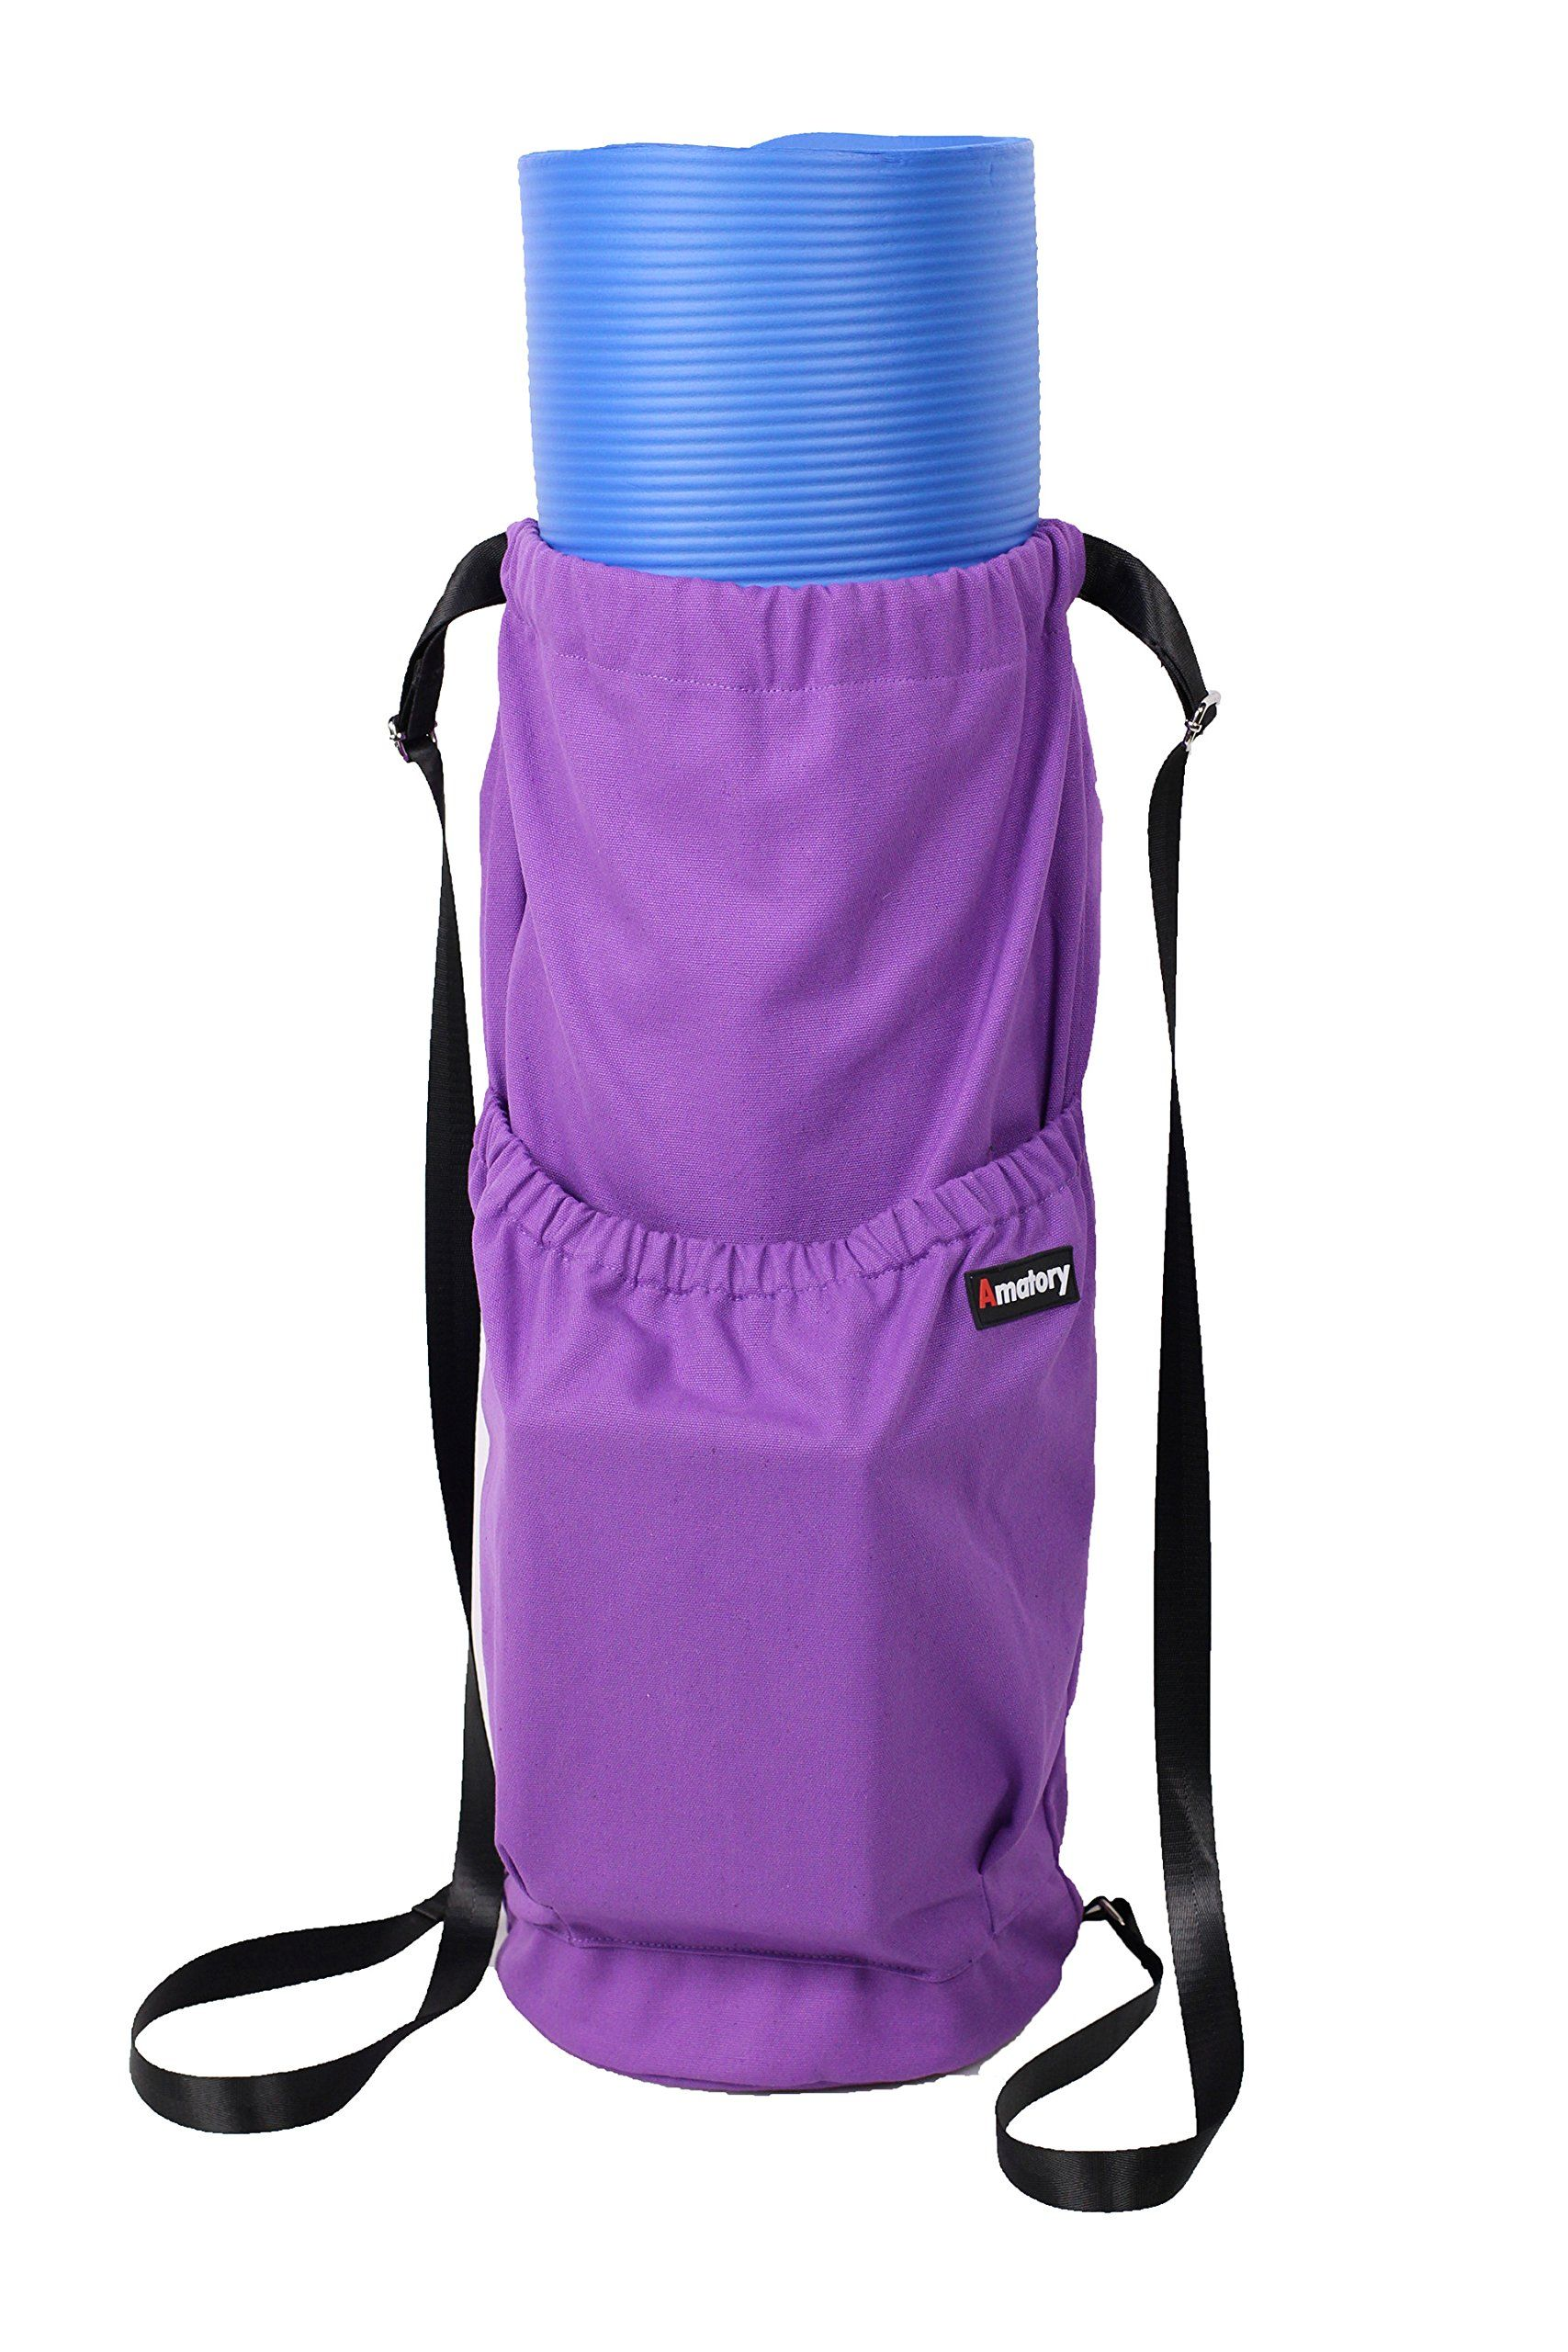 ed4de902a3a6 Yoga Mat Drawstring Bag Exercise Mat Carrying Bag (Purple). Large Room